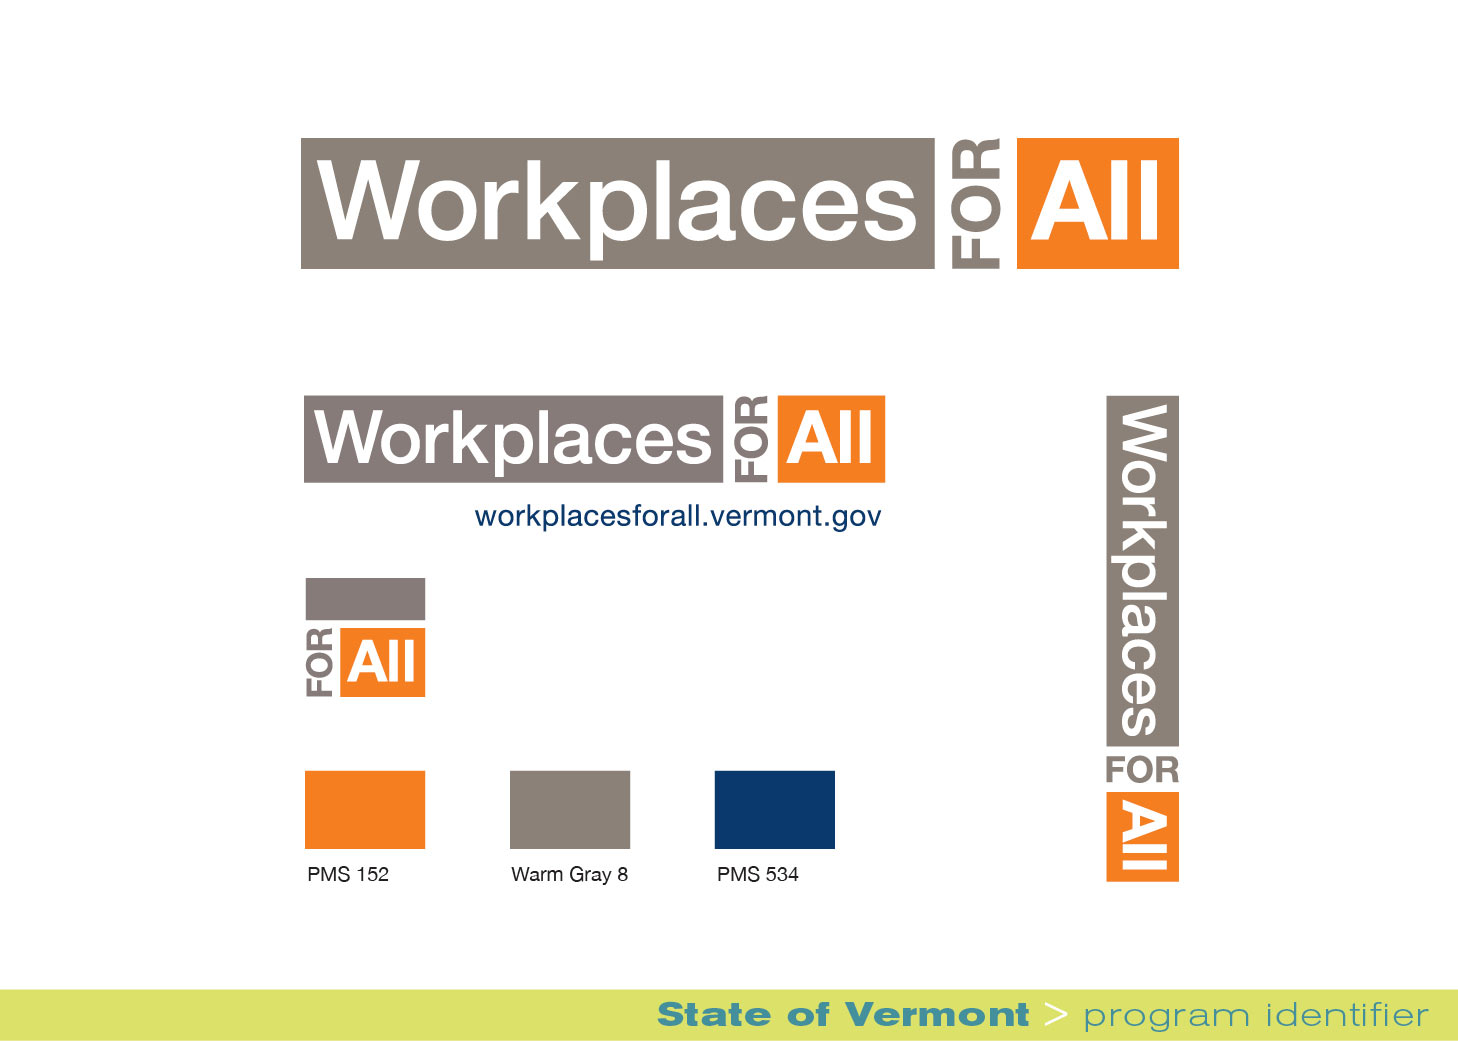 branding identity_Workplaces for All_program identifier